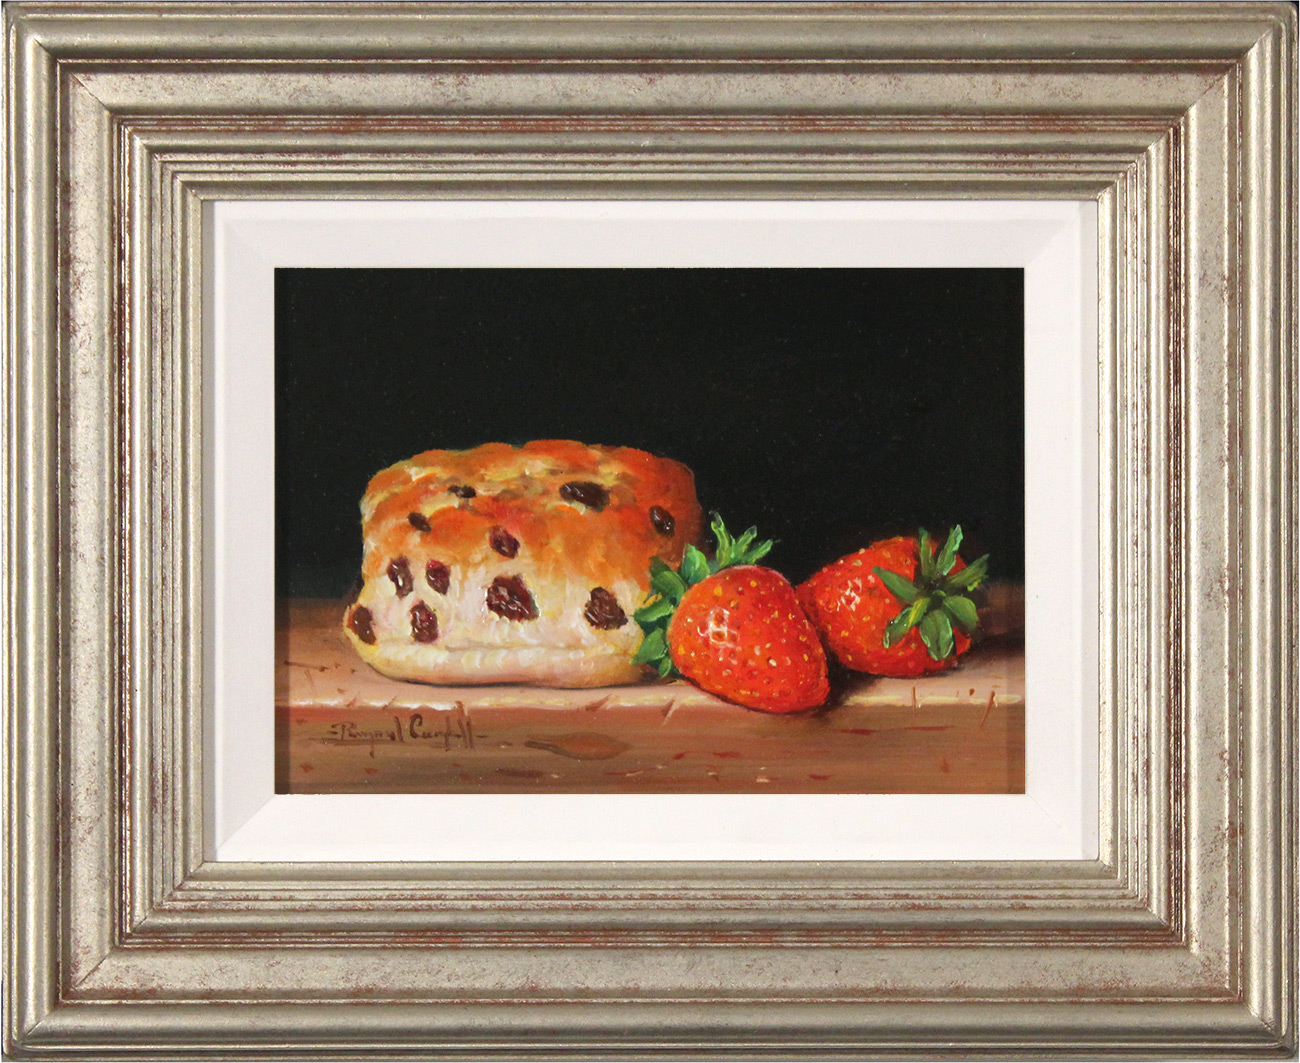 Raymond Campbell, Original oil painting on panel, Afternoon Tea, click to enlarge